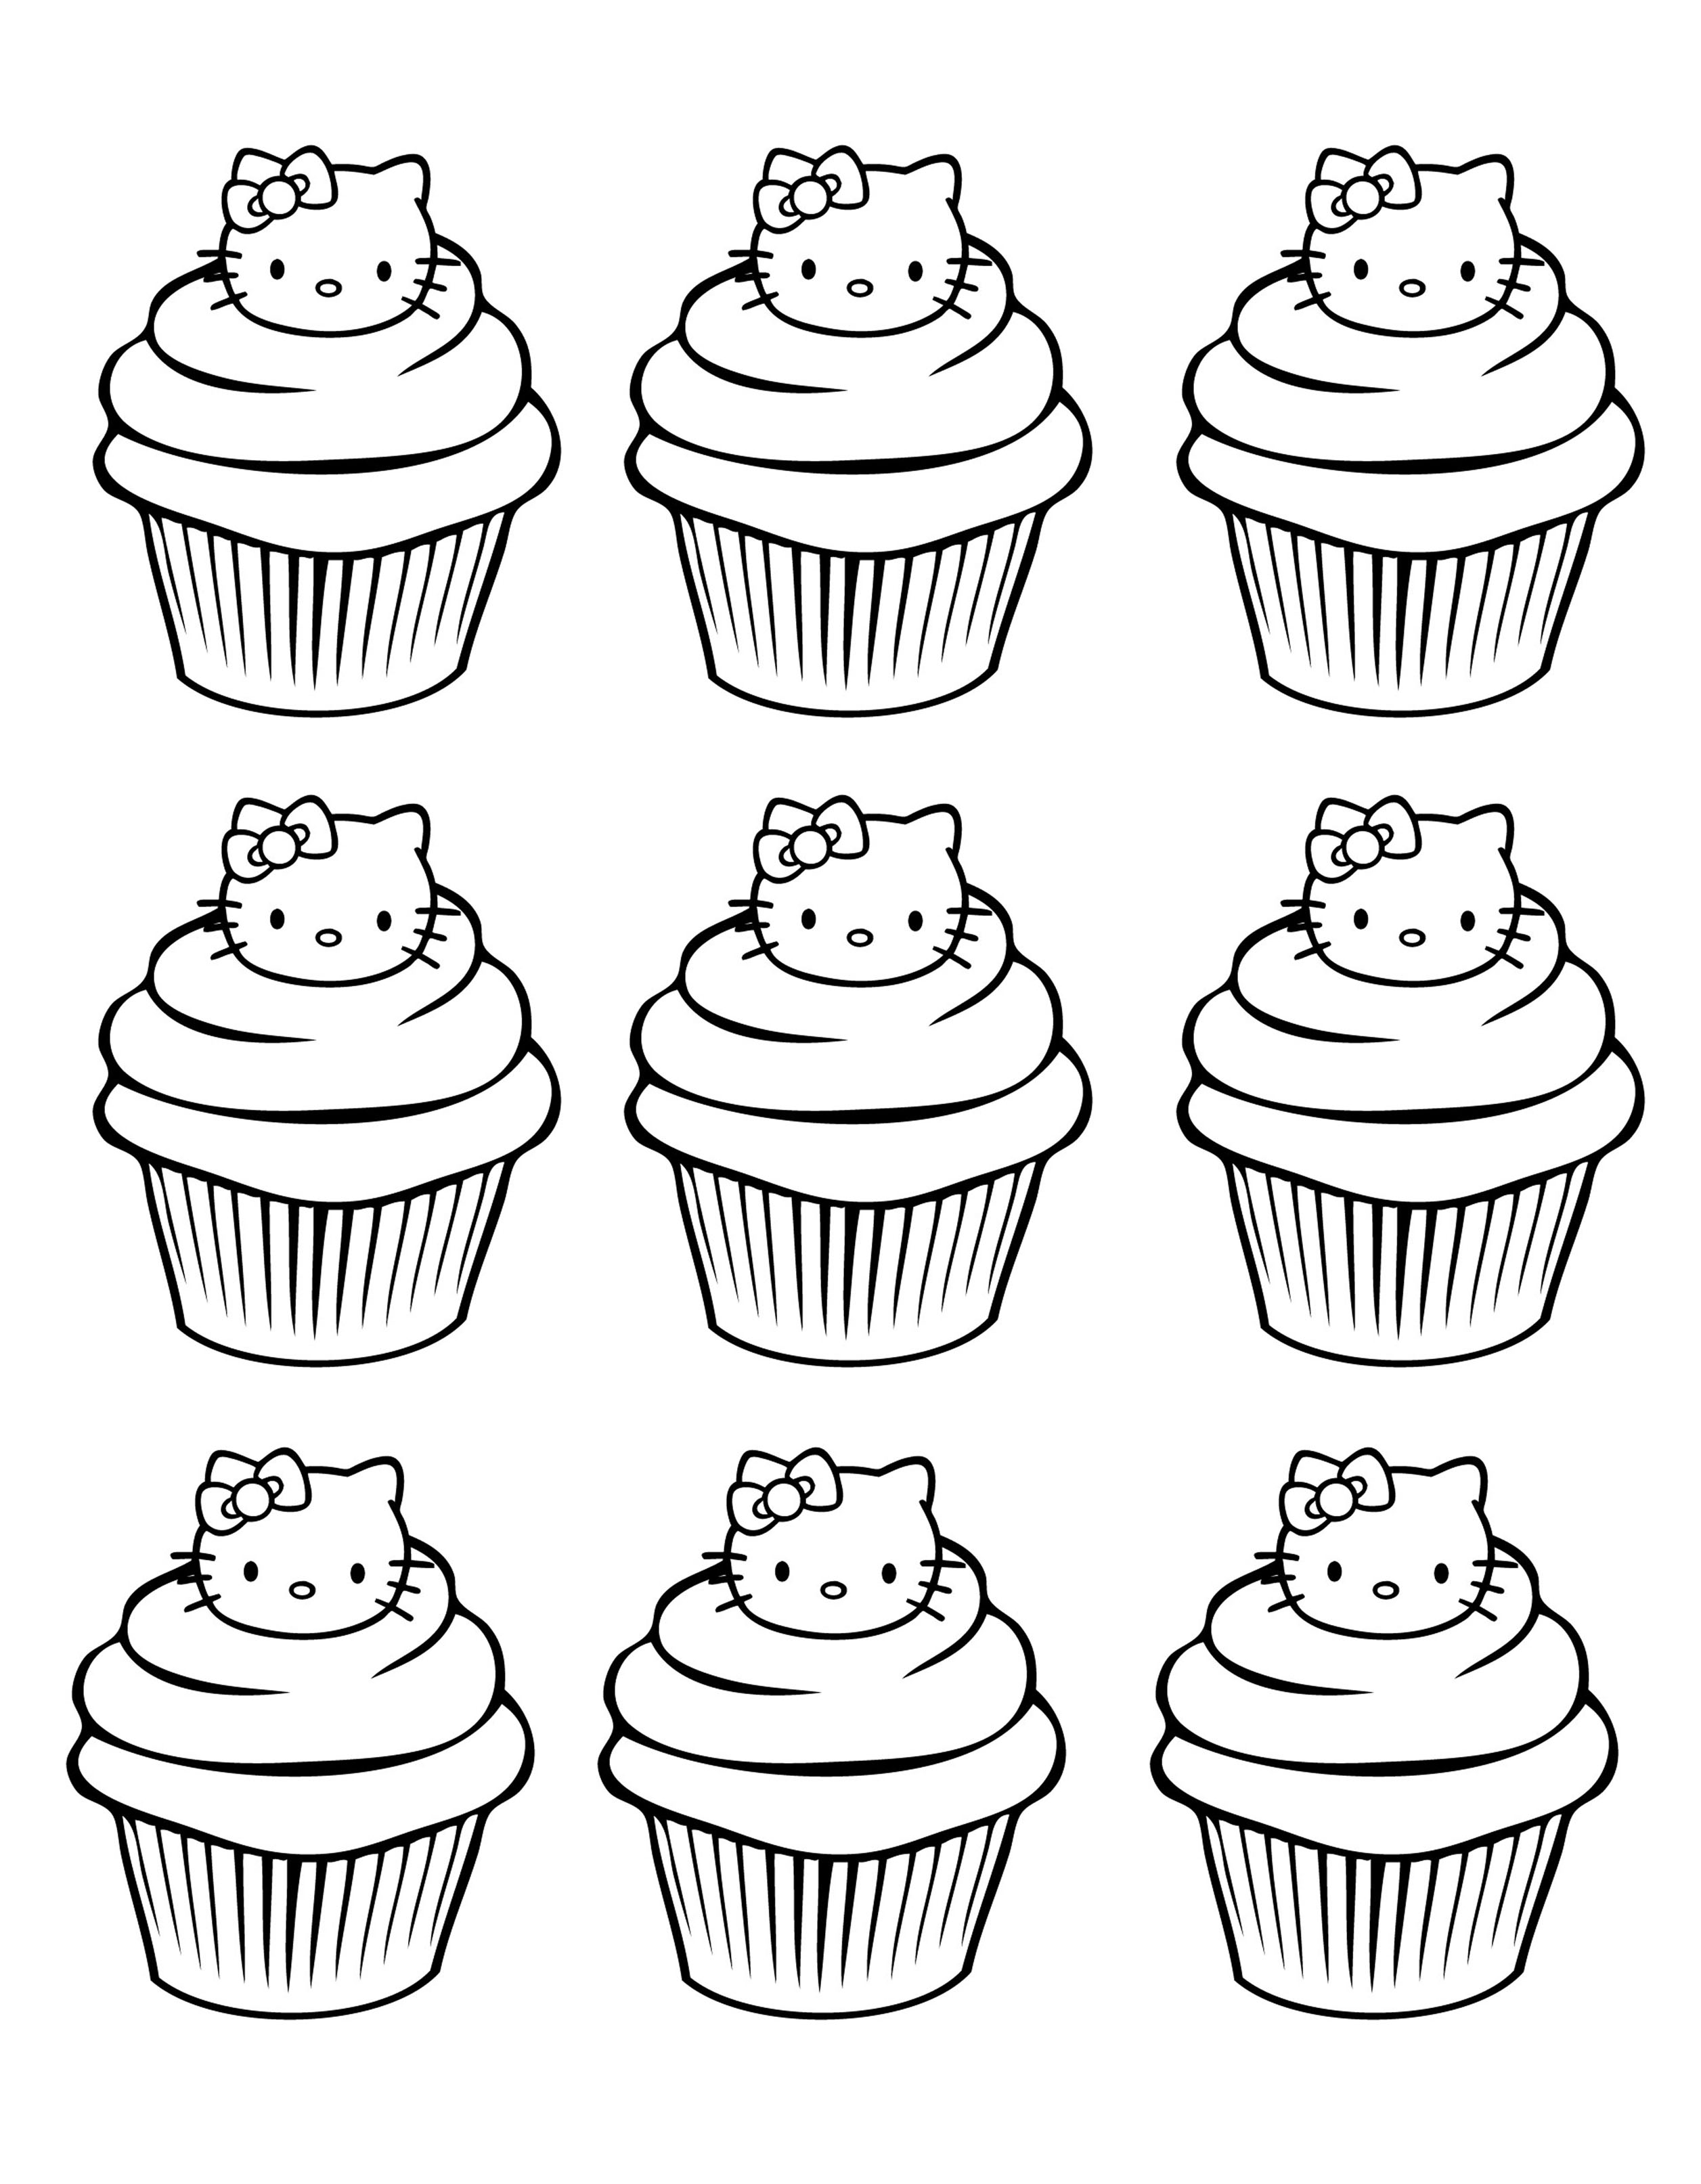 Coloring Page Of Sweet Hello Kitty Cupcakes